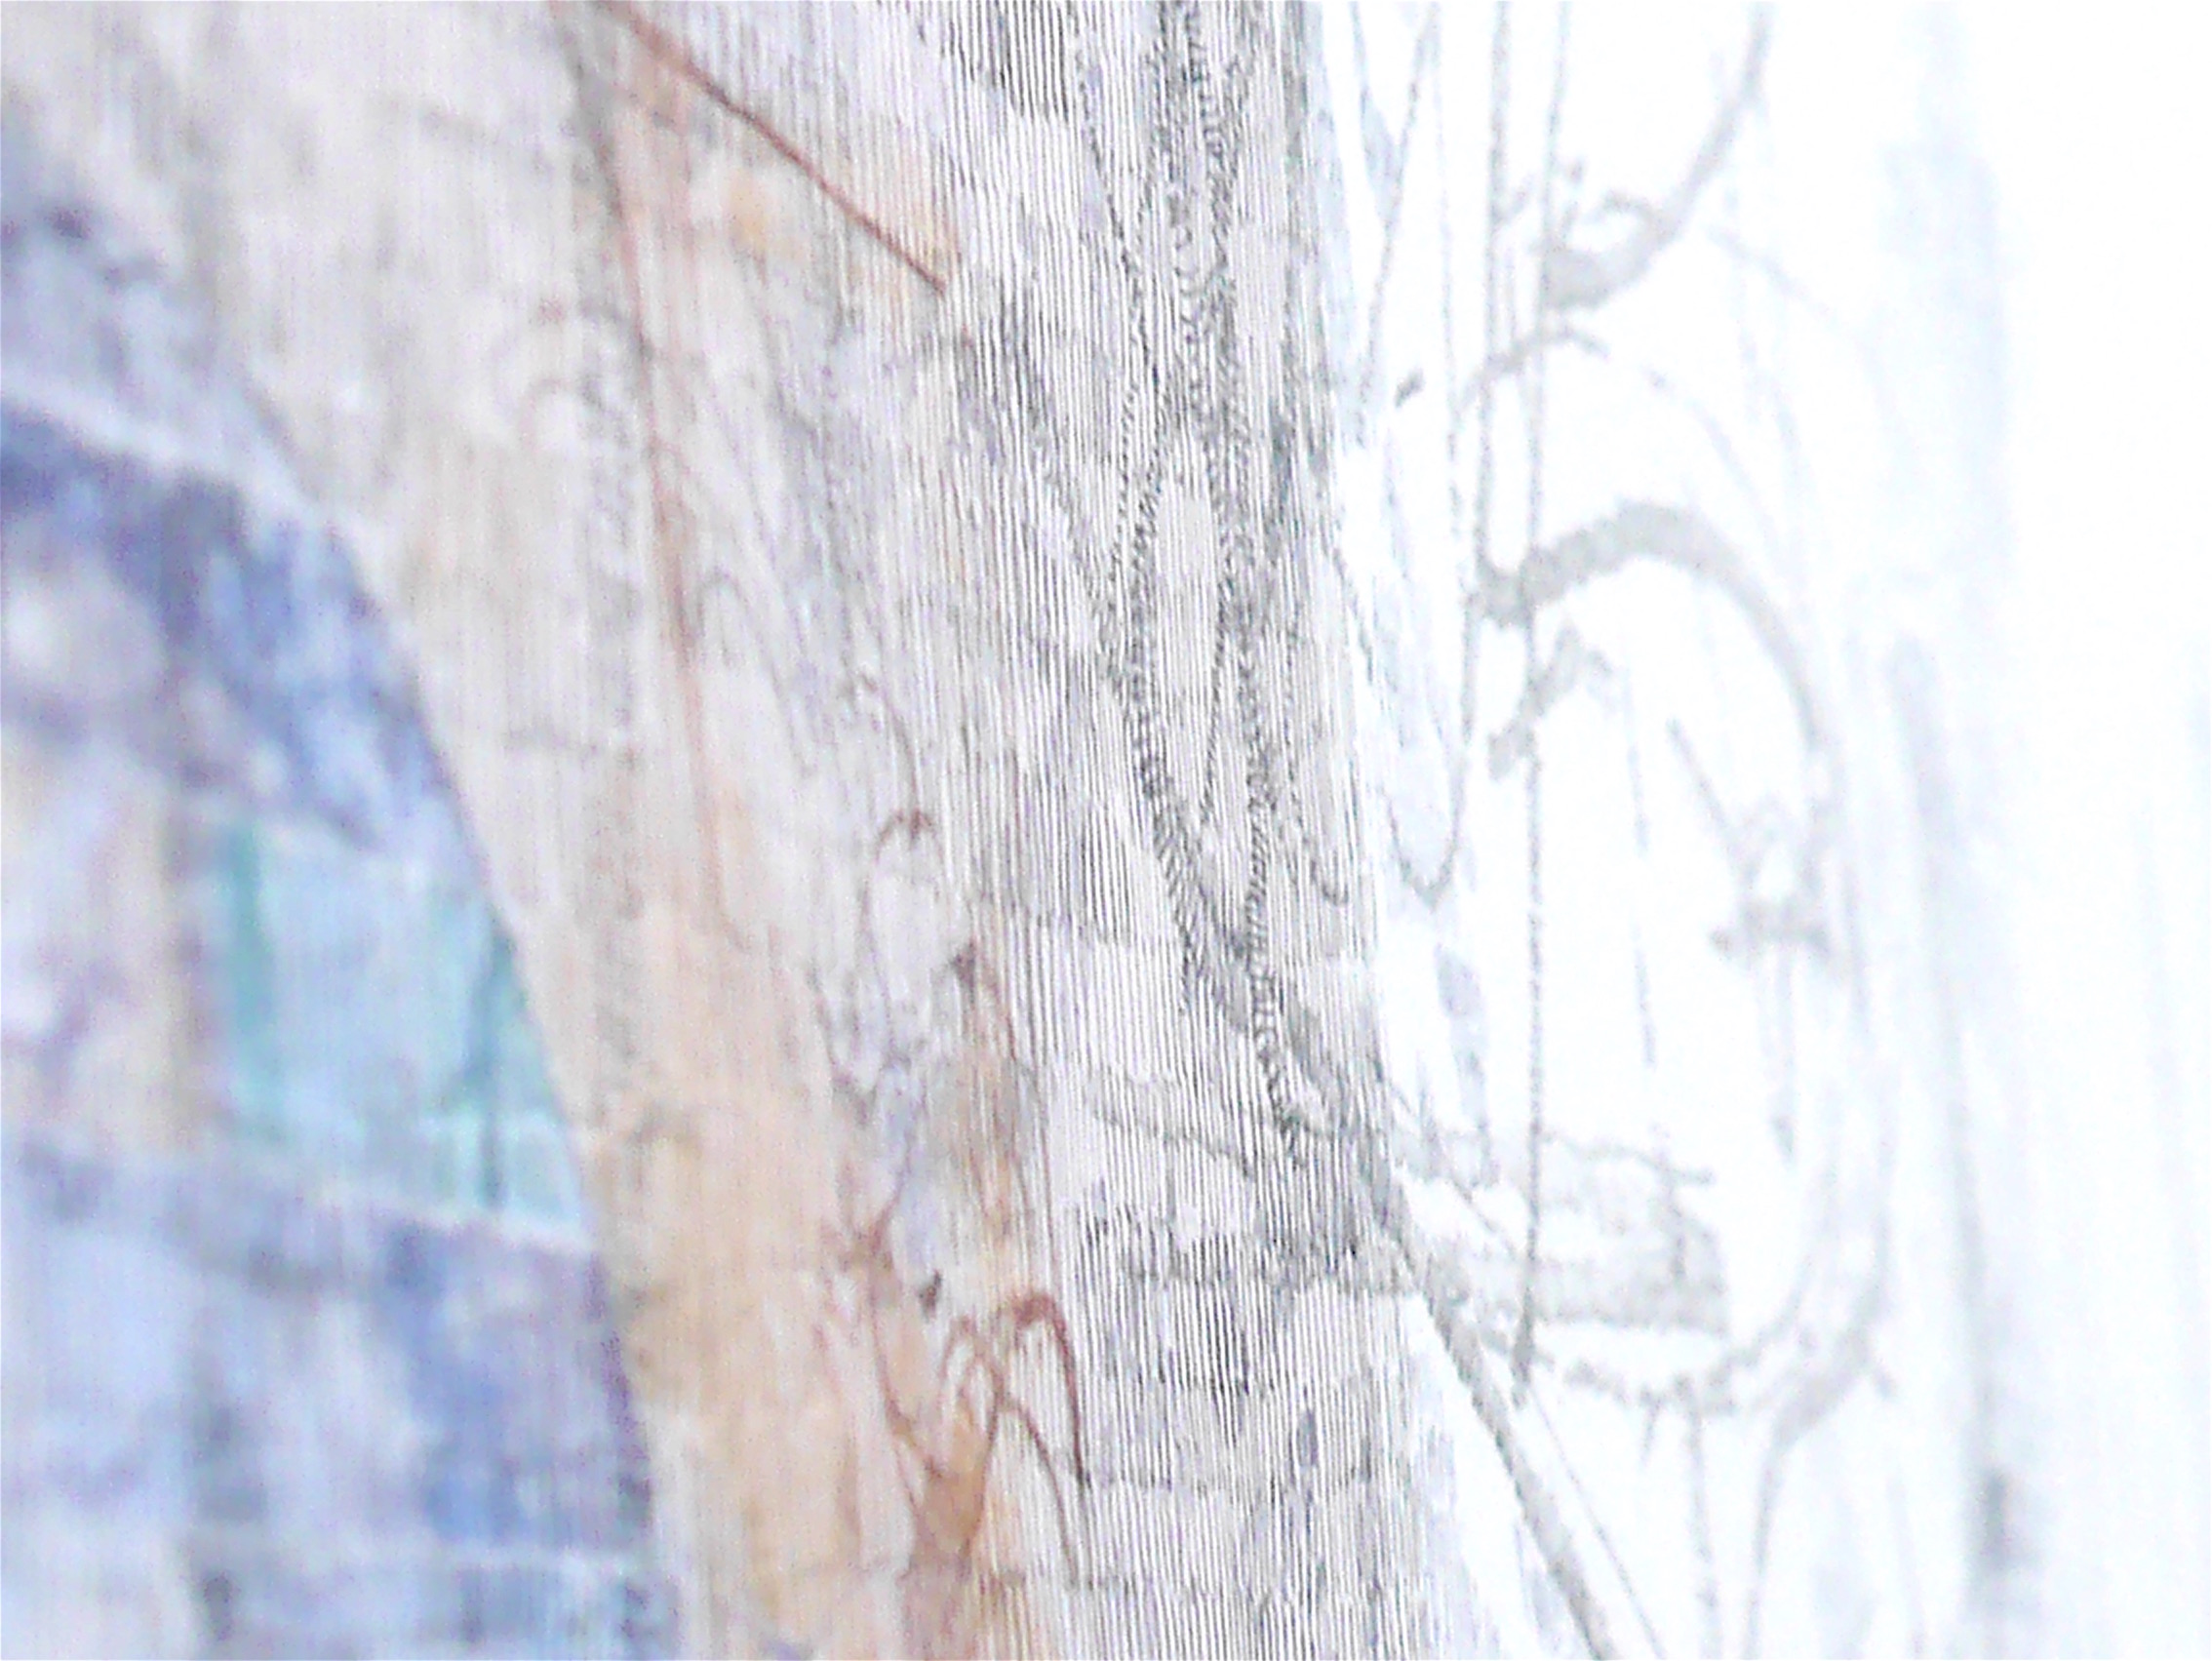 Caroline Ali, Altered Territories 18, [black watercolour, collage] detail 1